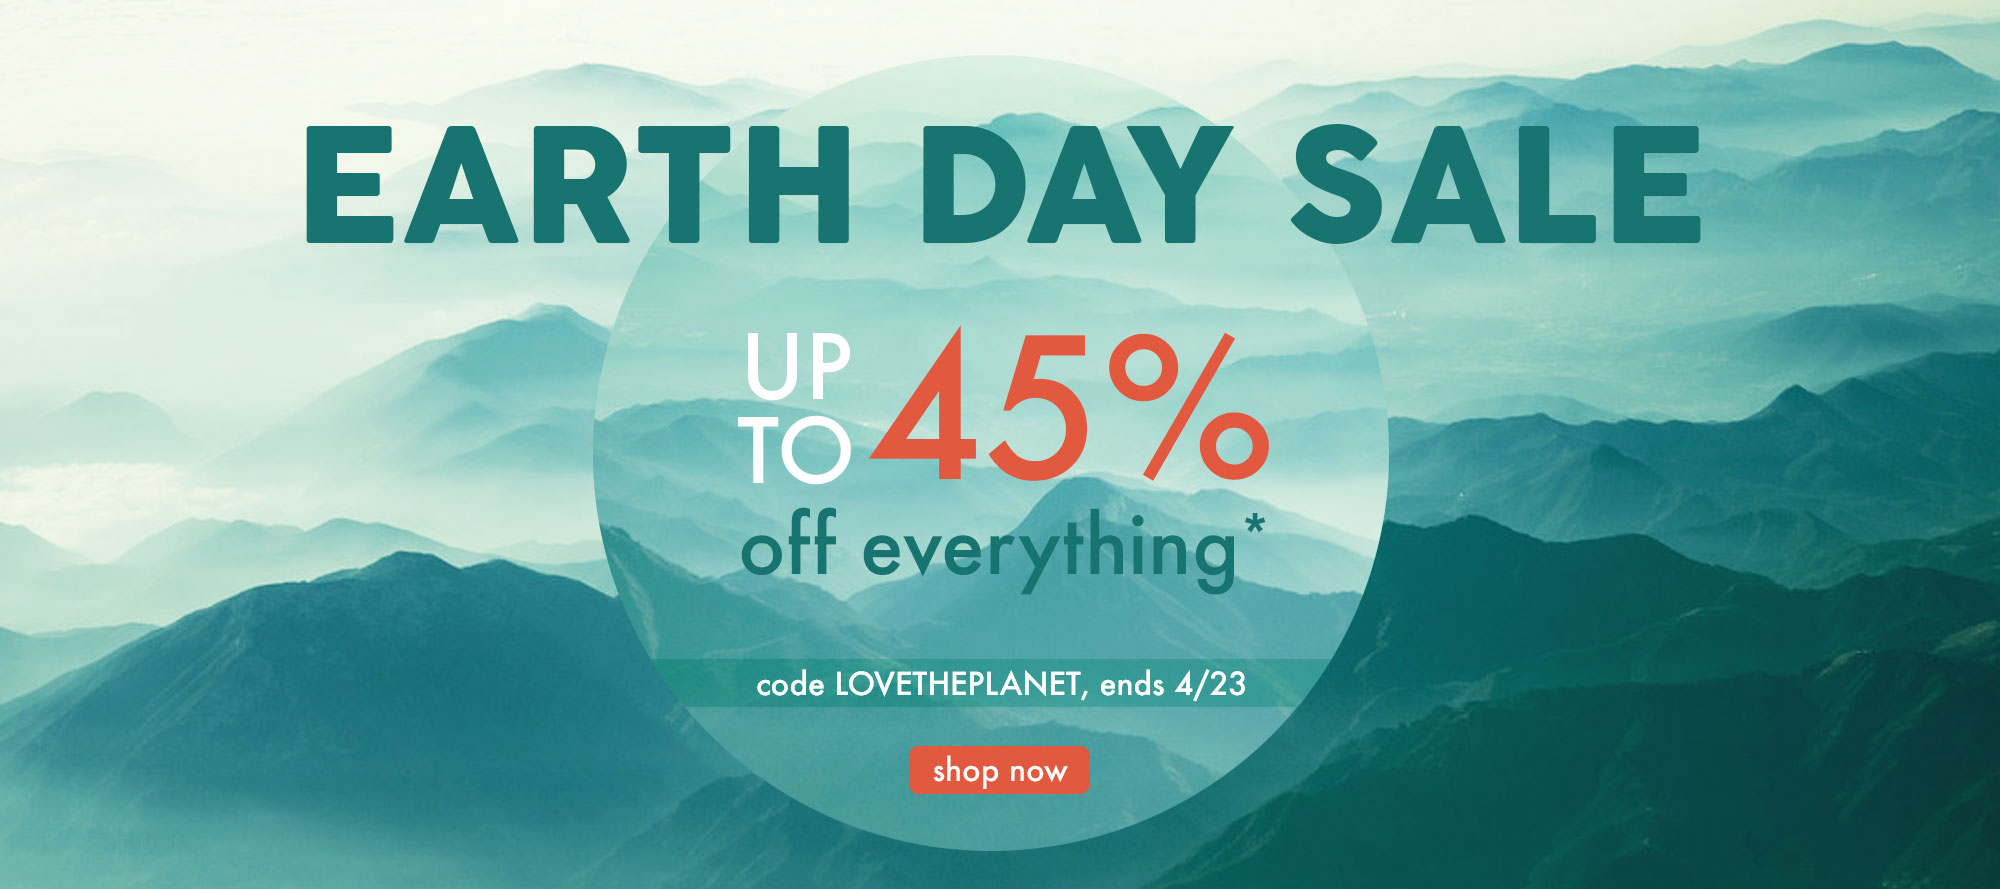 down to earth sale, take up to 45% off everything*